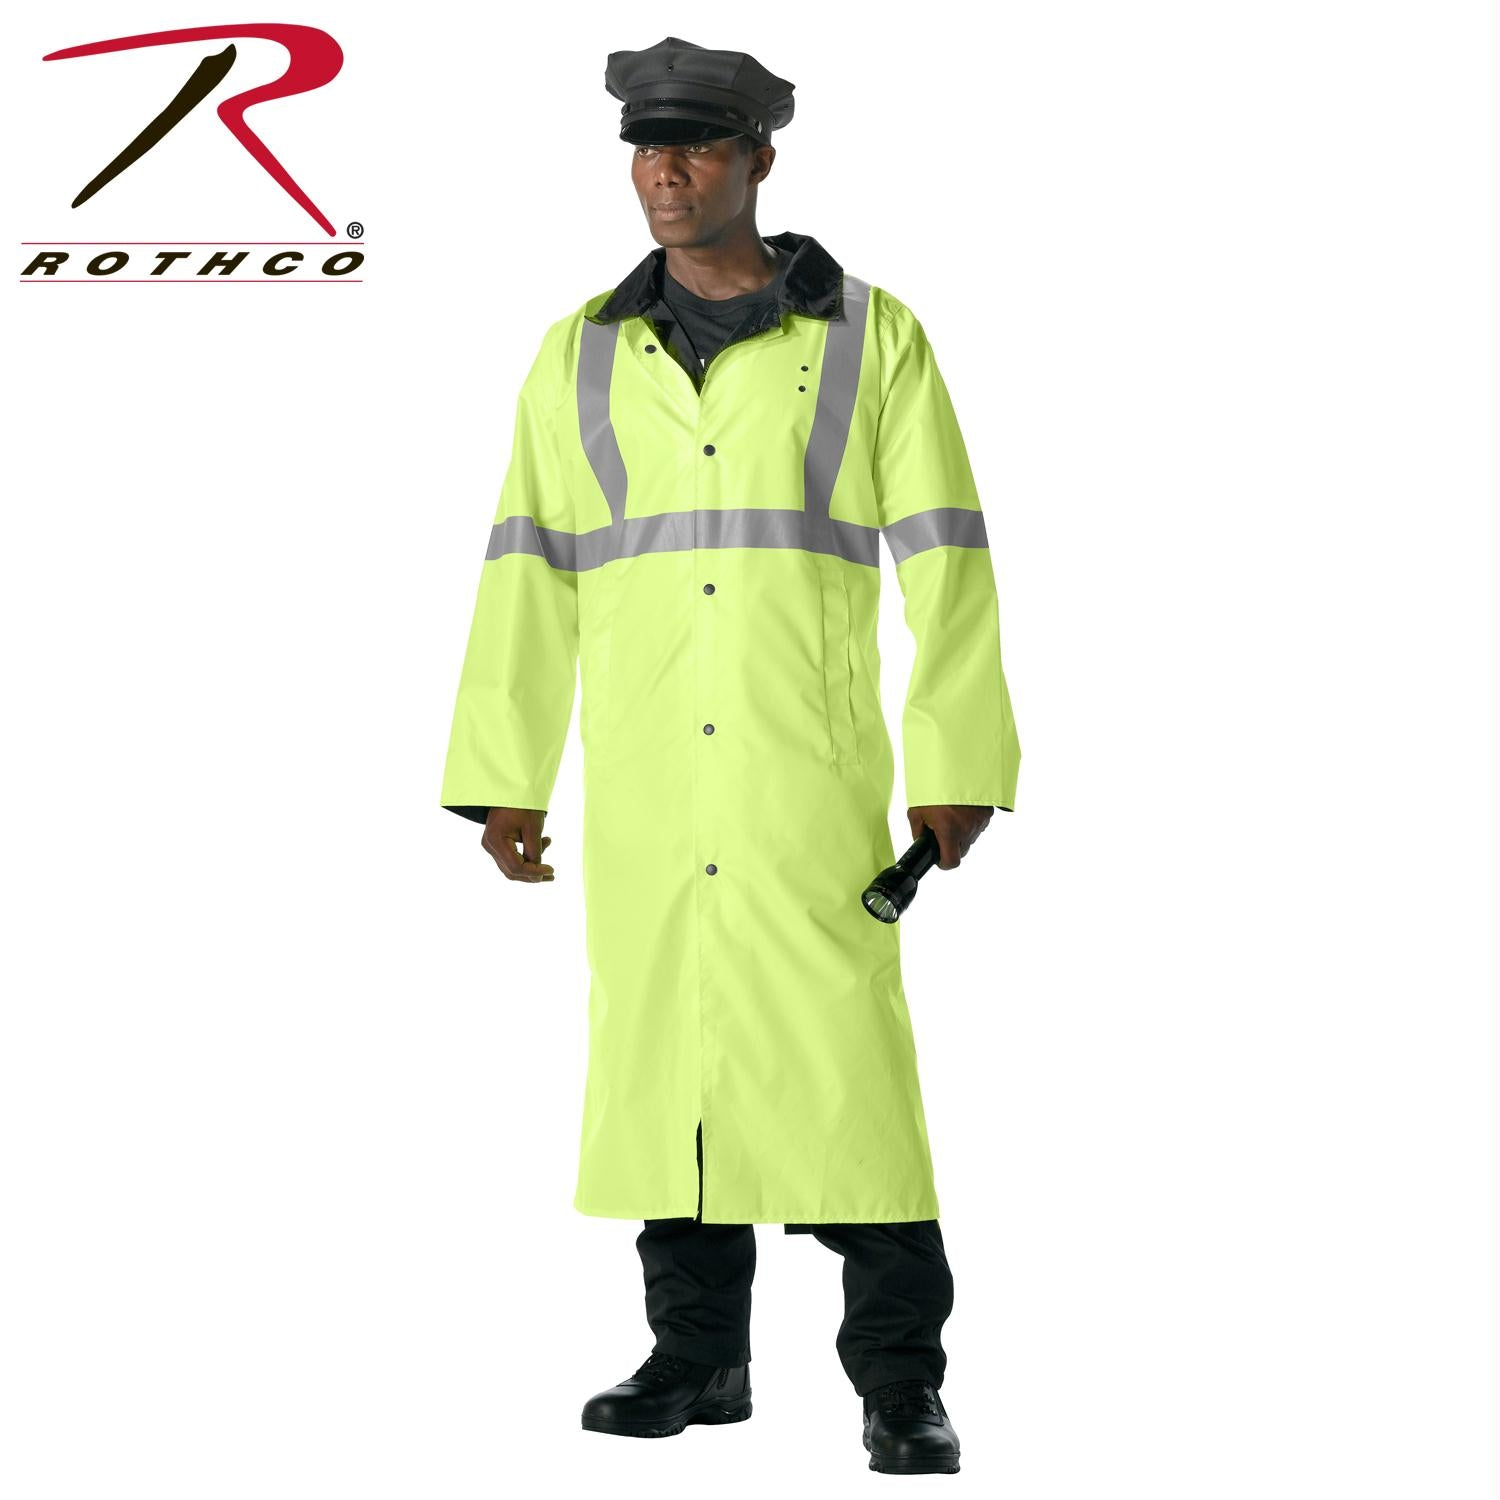 Rothco Reversible Reflective Rain Parka - Safety Green / 2XL